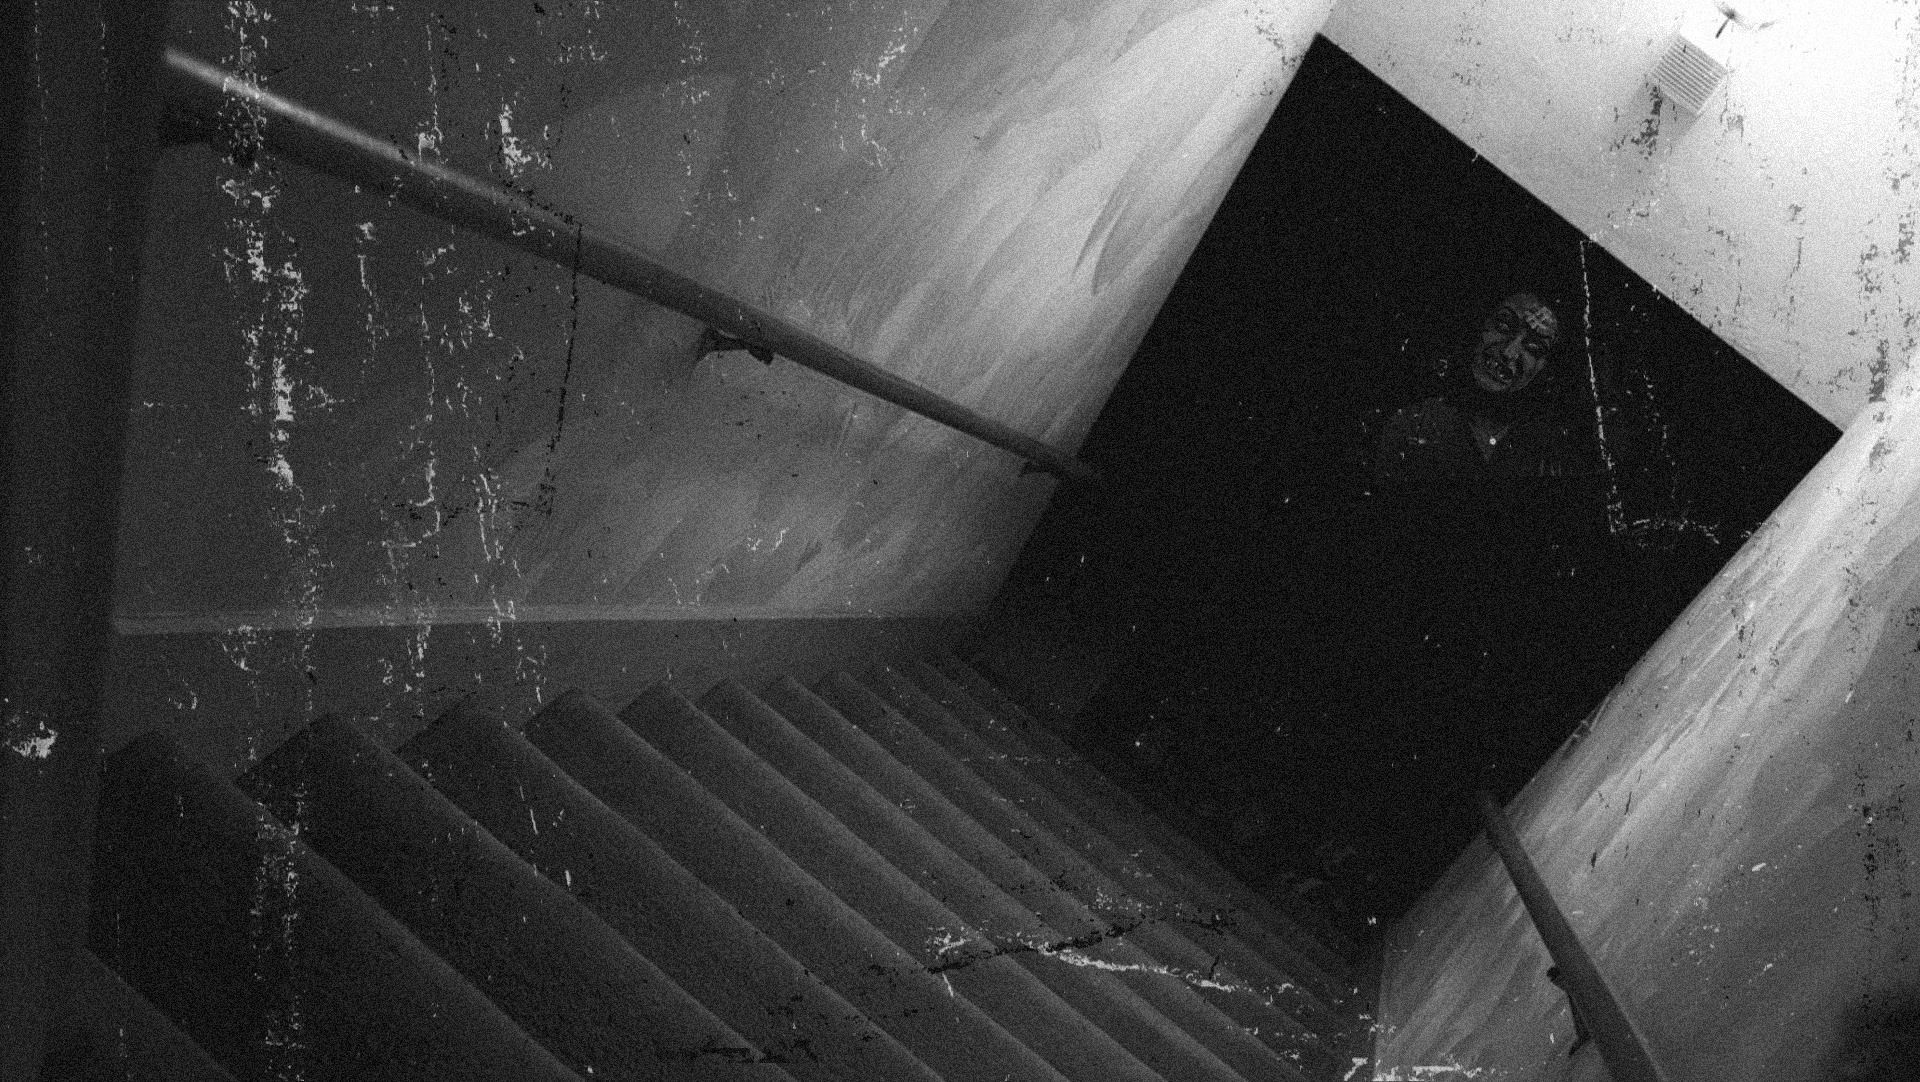 Don T Go Down There Creepy Horror Movie Basements You Ll Want To